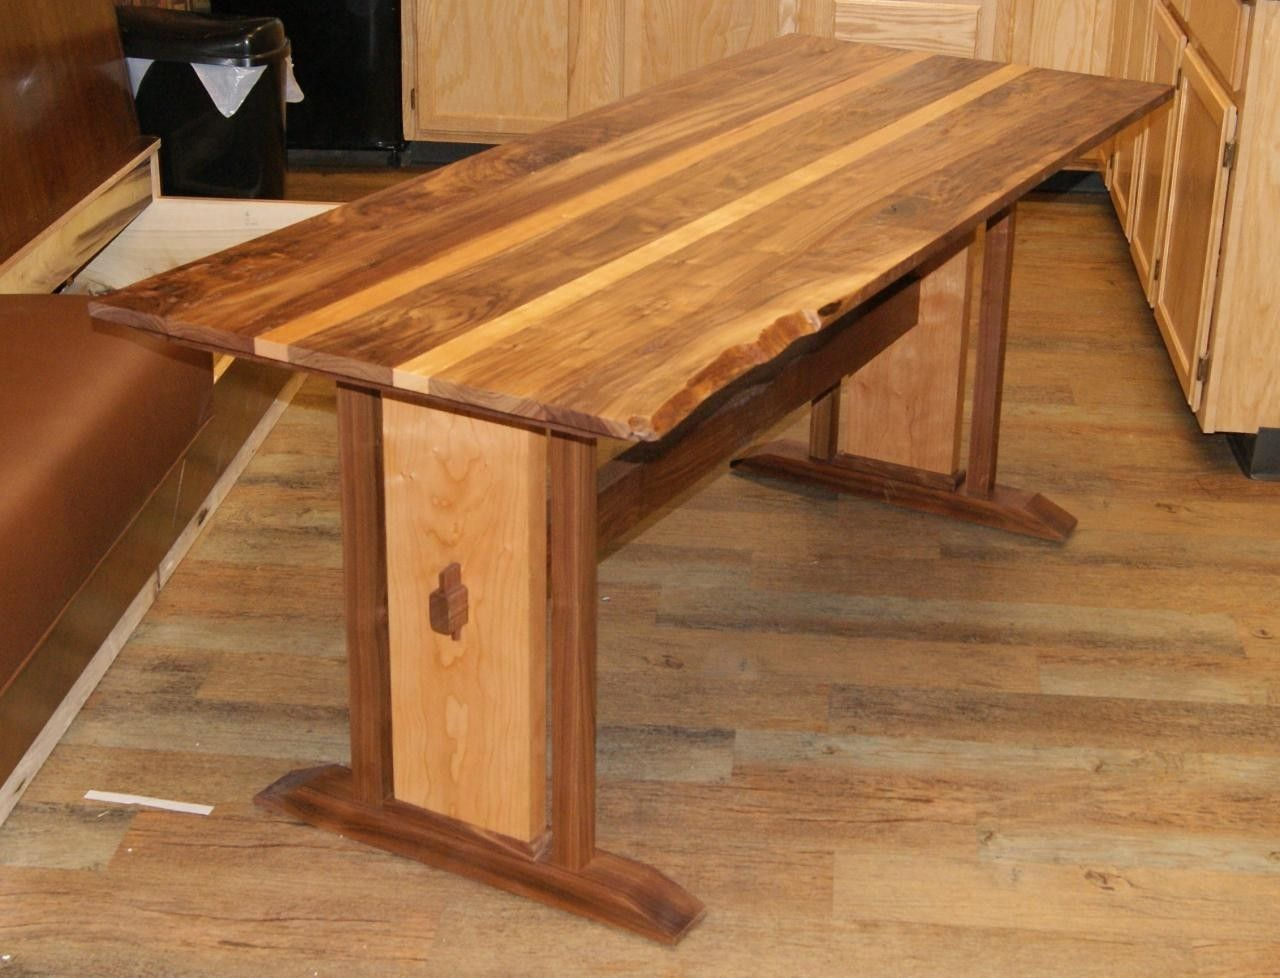 Handmade Rustic Trestle Table By Hayes Furniture Design